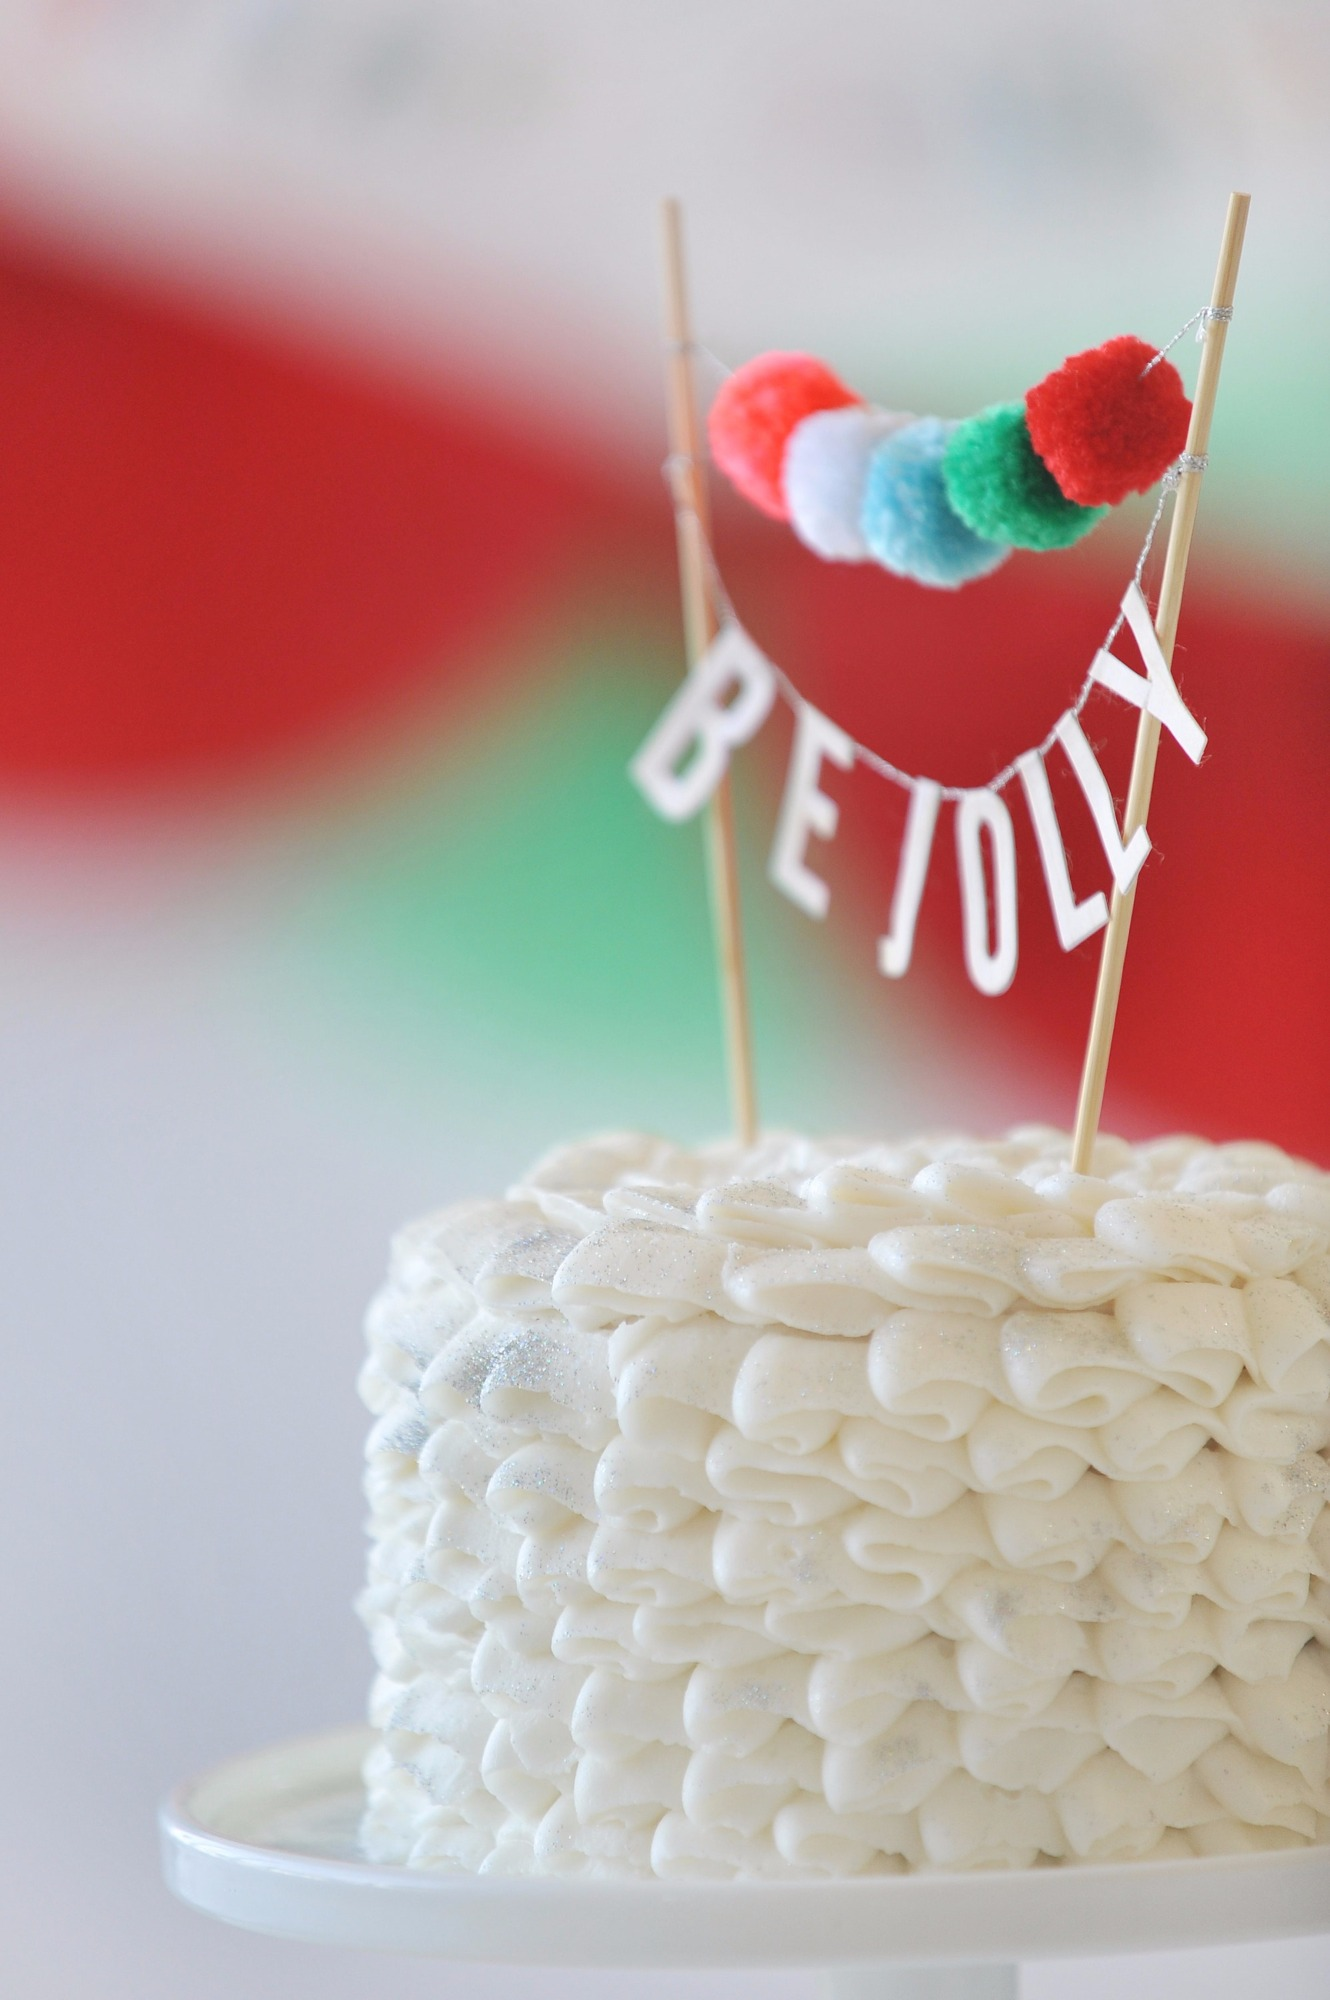 Be Jolly Cake Topper from Holly Jolly Party by Happy Wish Company | Black Twine